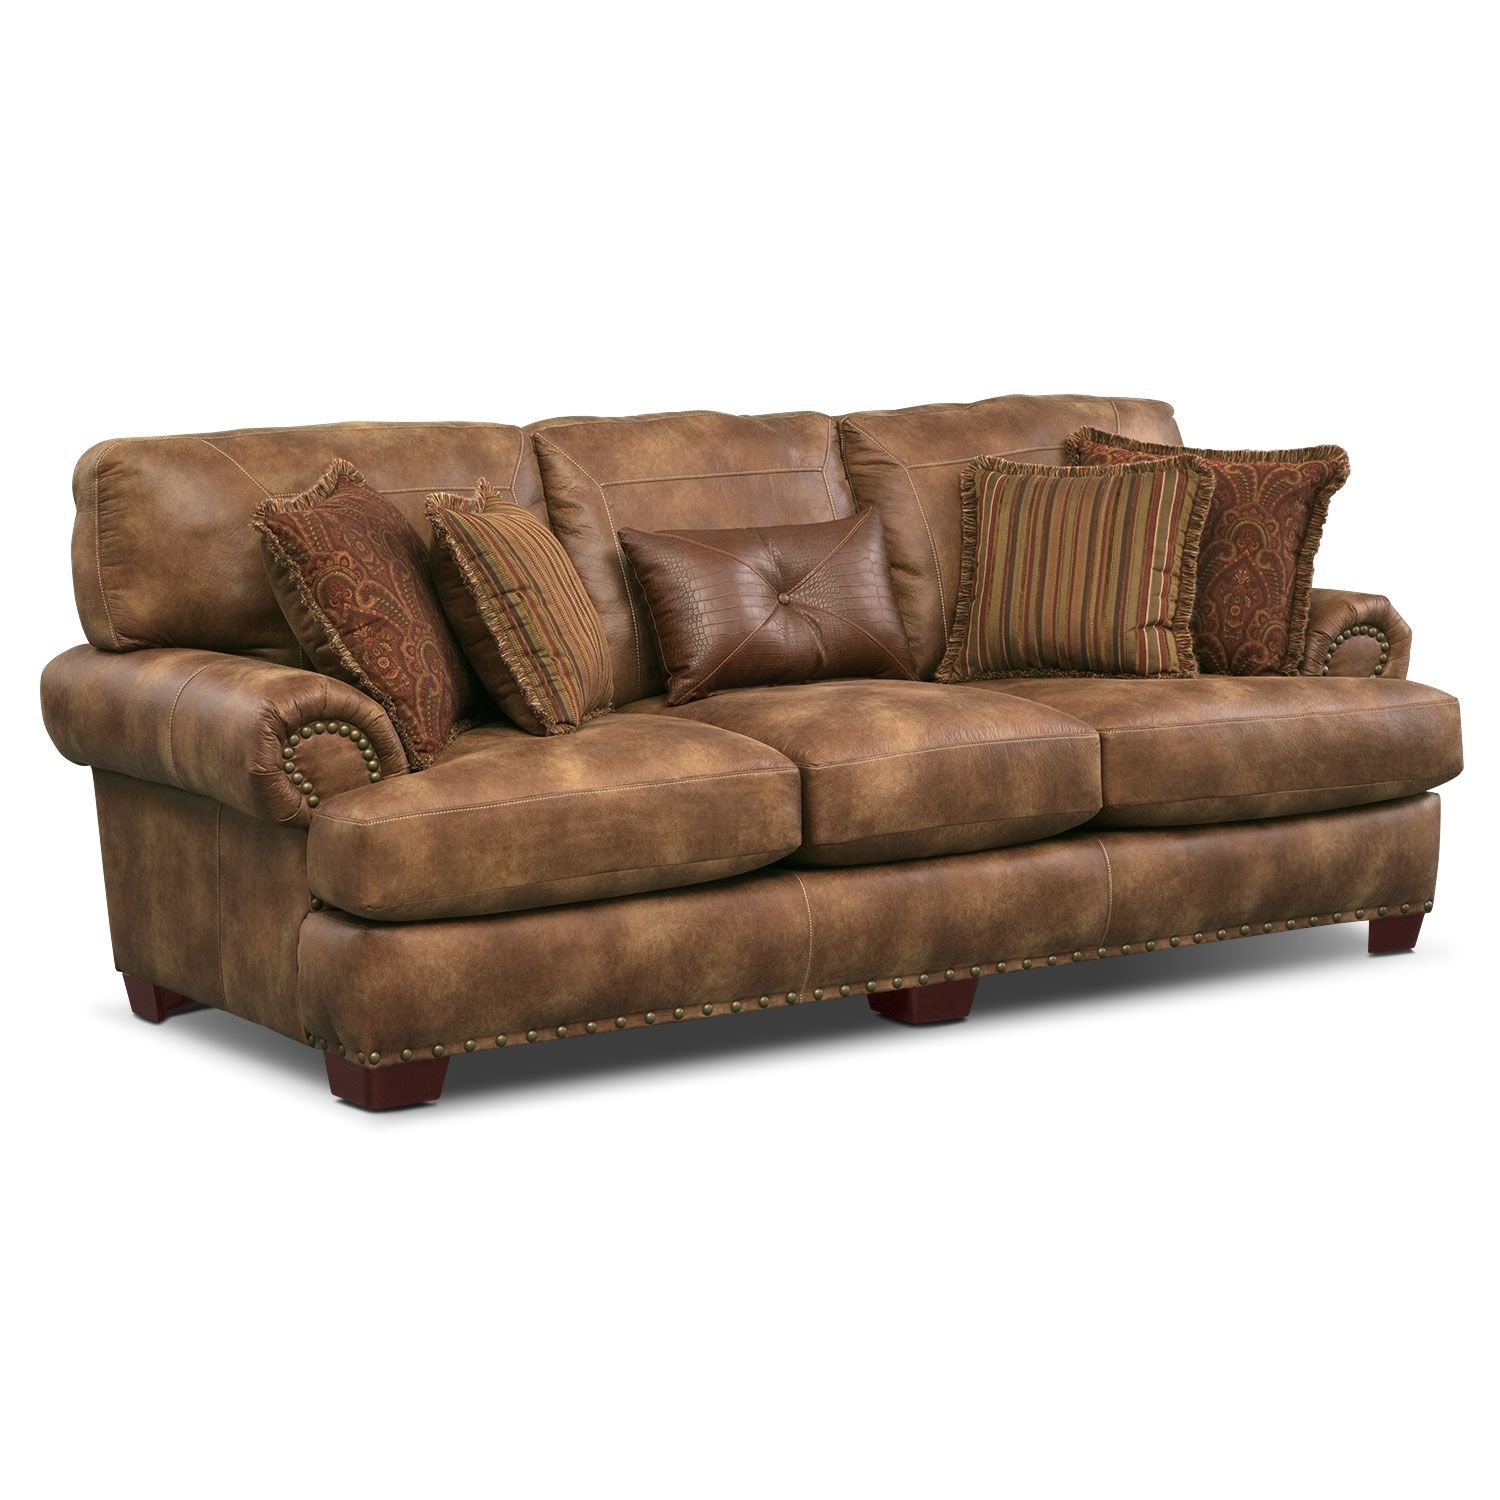 Laura Ashley Burlington Leather Sofa Corner Chaise End Distressed Tan Brown Large